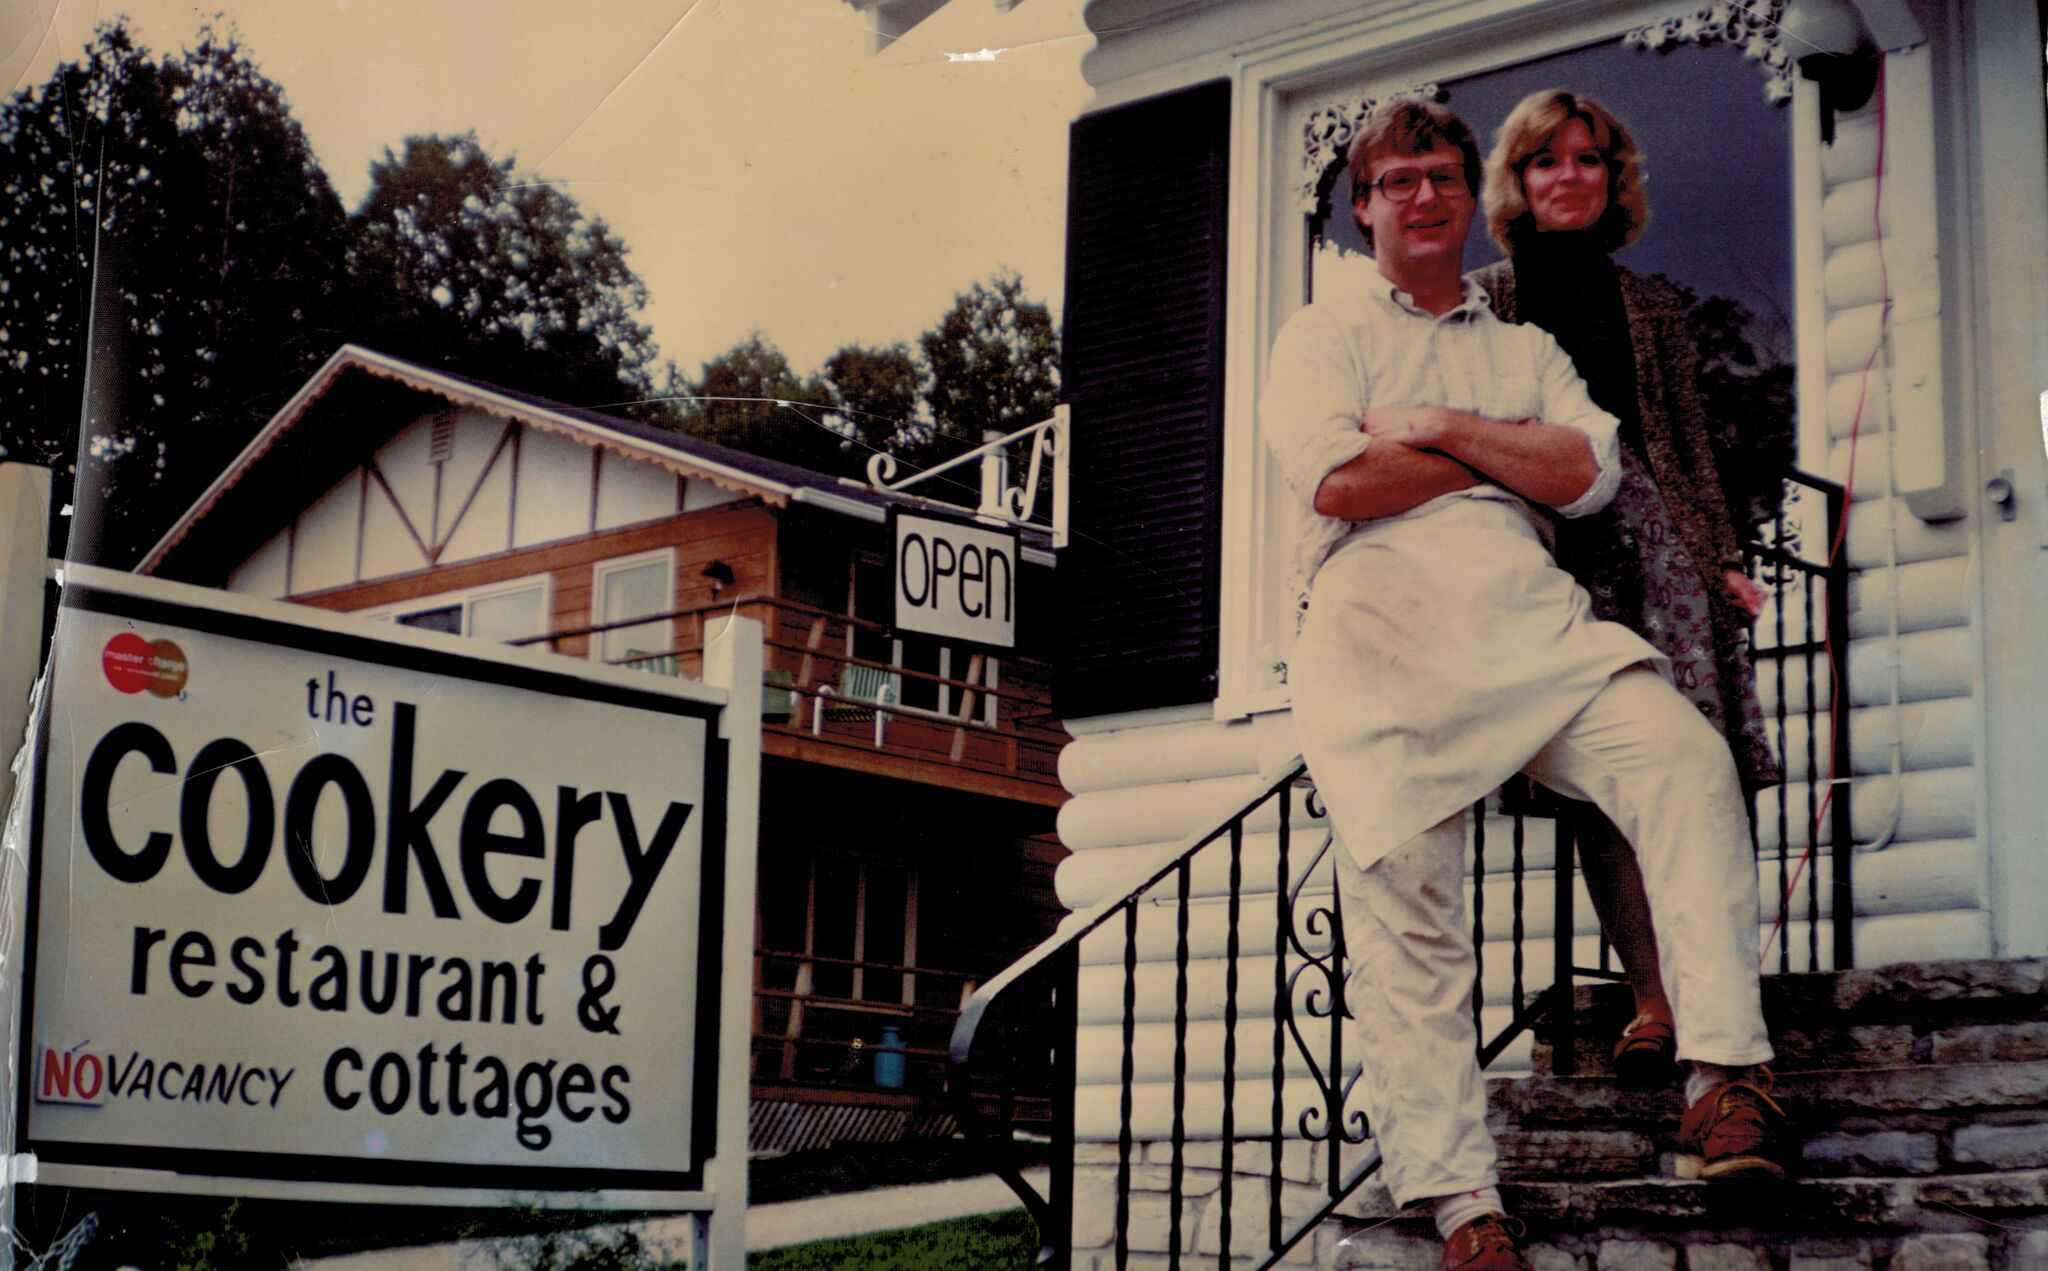 Dick and Carol outside the Cookery.